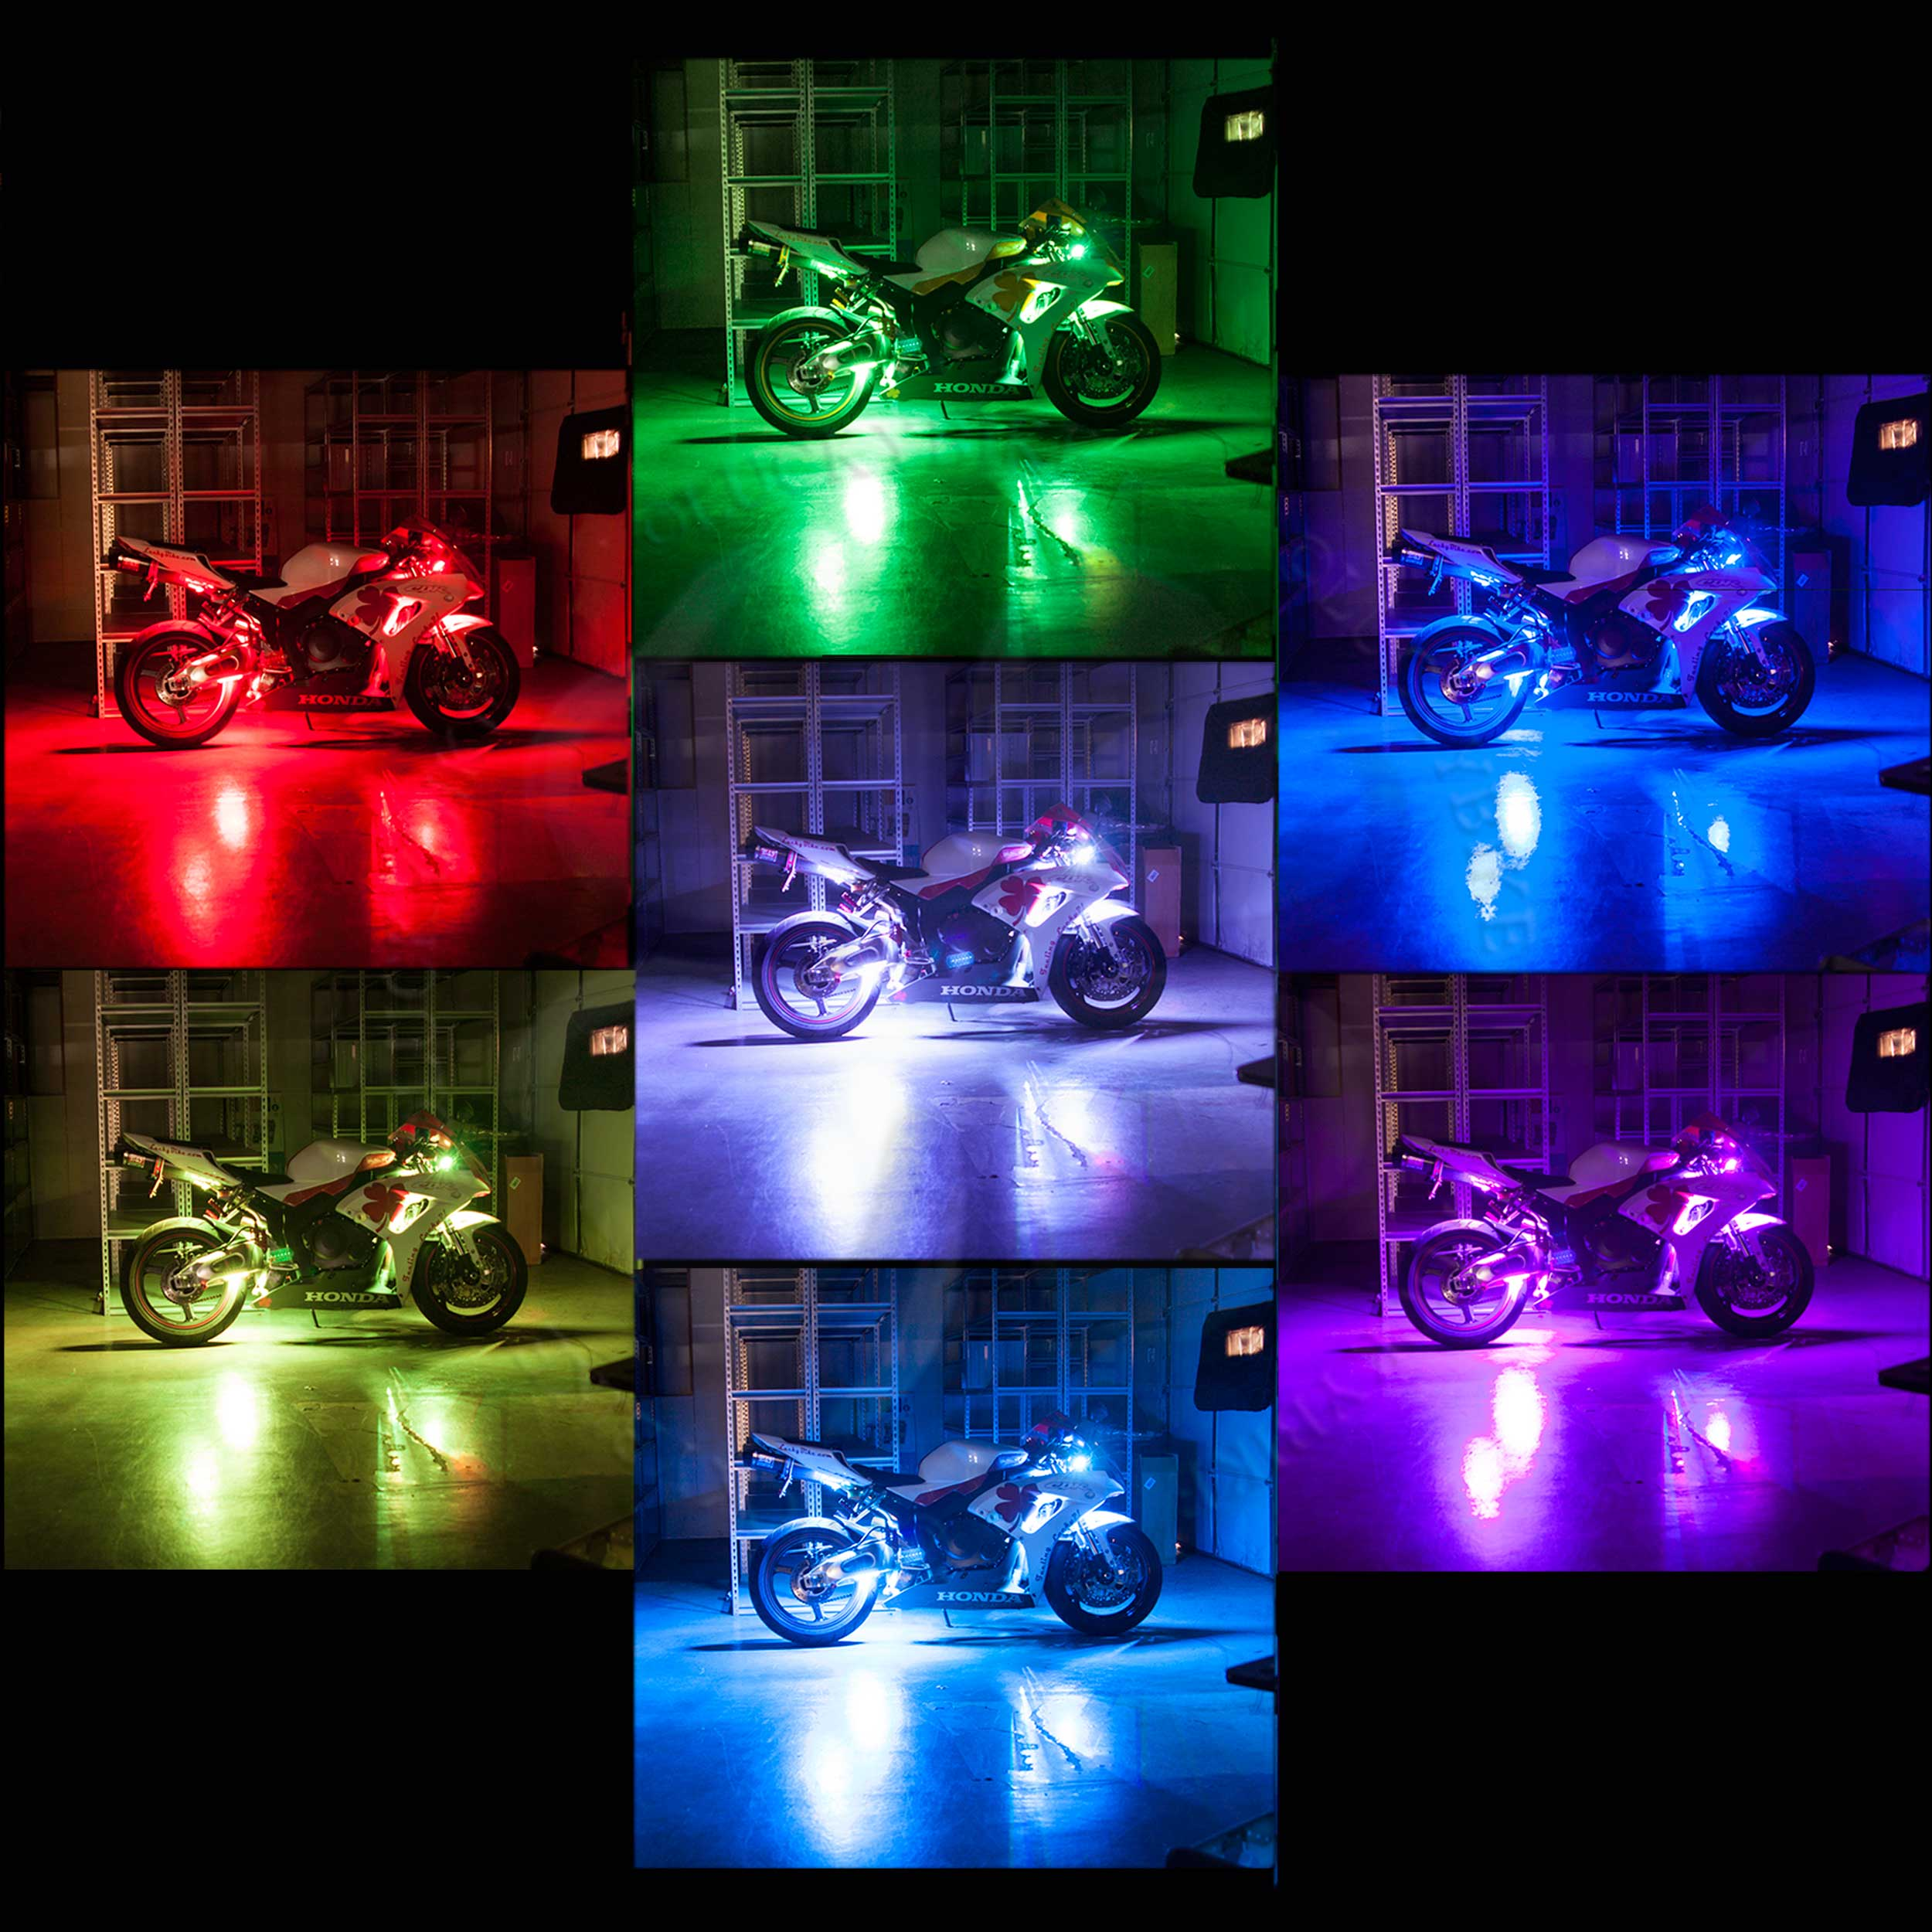 Lighting - LED RGB Kit - Remote Controlled - 8 Strips